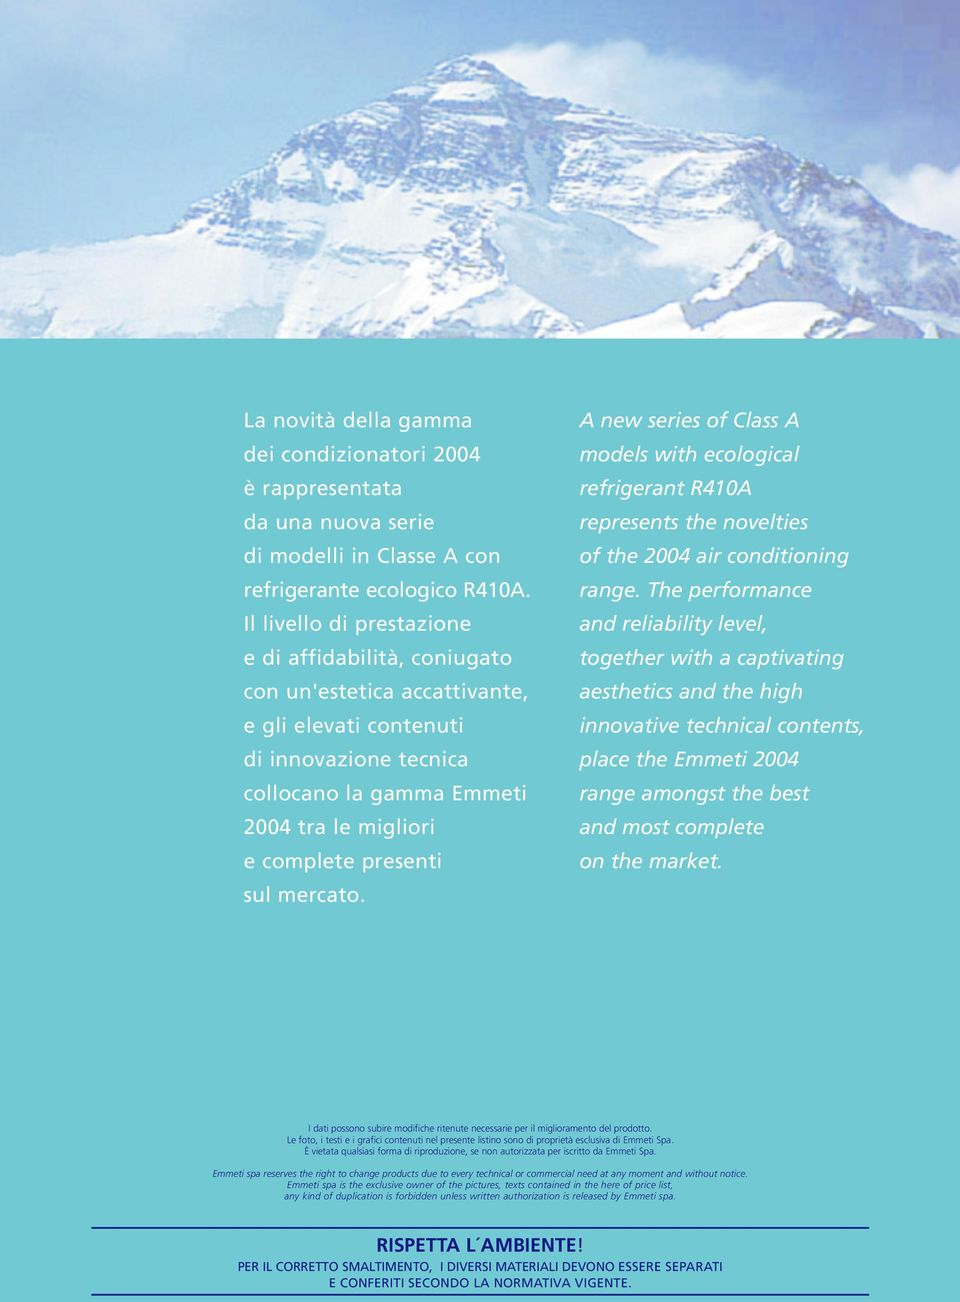 sul mercato. new series of lass models with ecological refrigerant R410 represents the novelties of the 2004 air conditioning range.